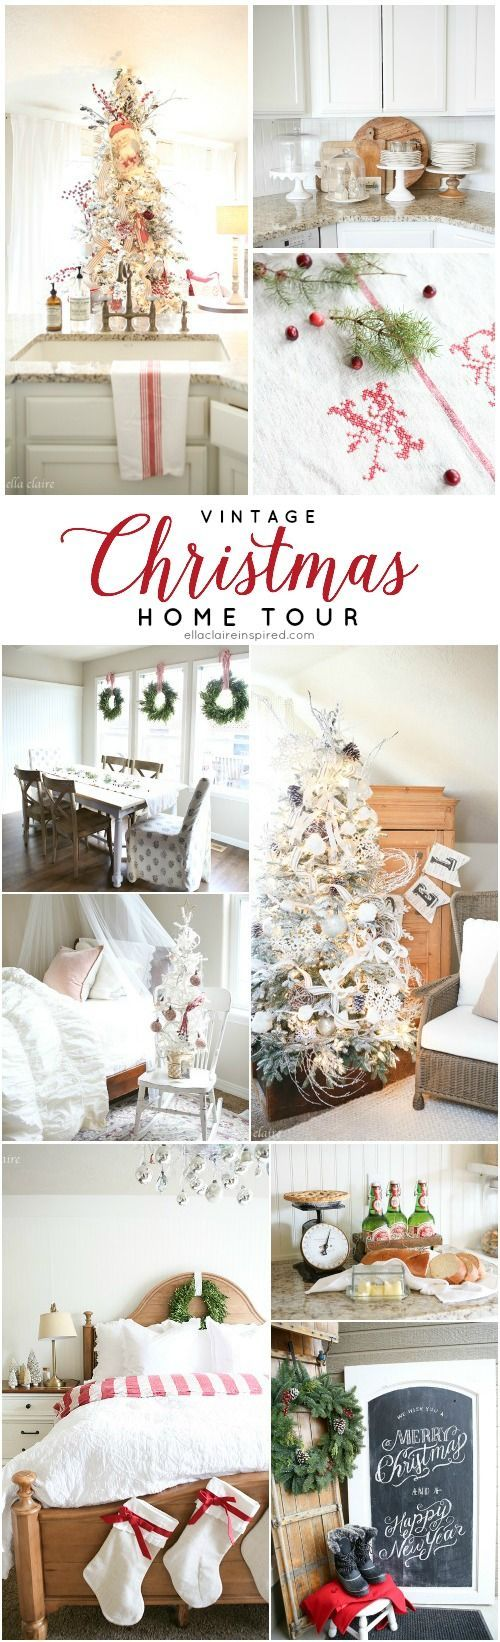 A Christmas Home Tour packed with vintage